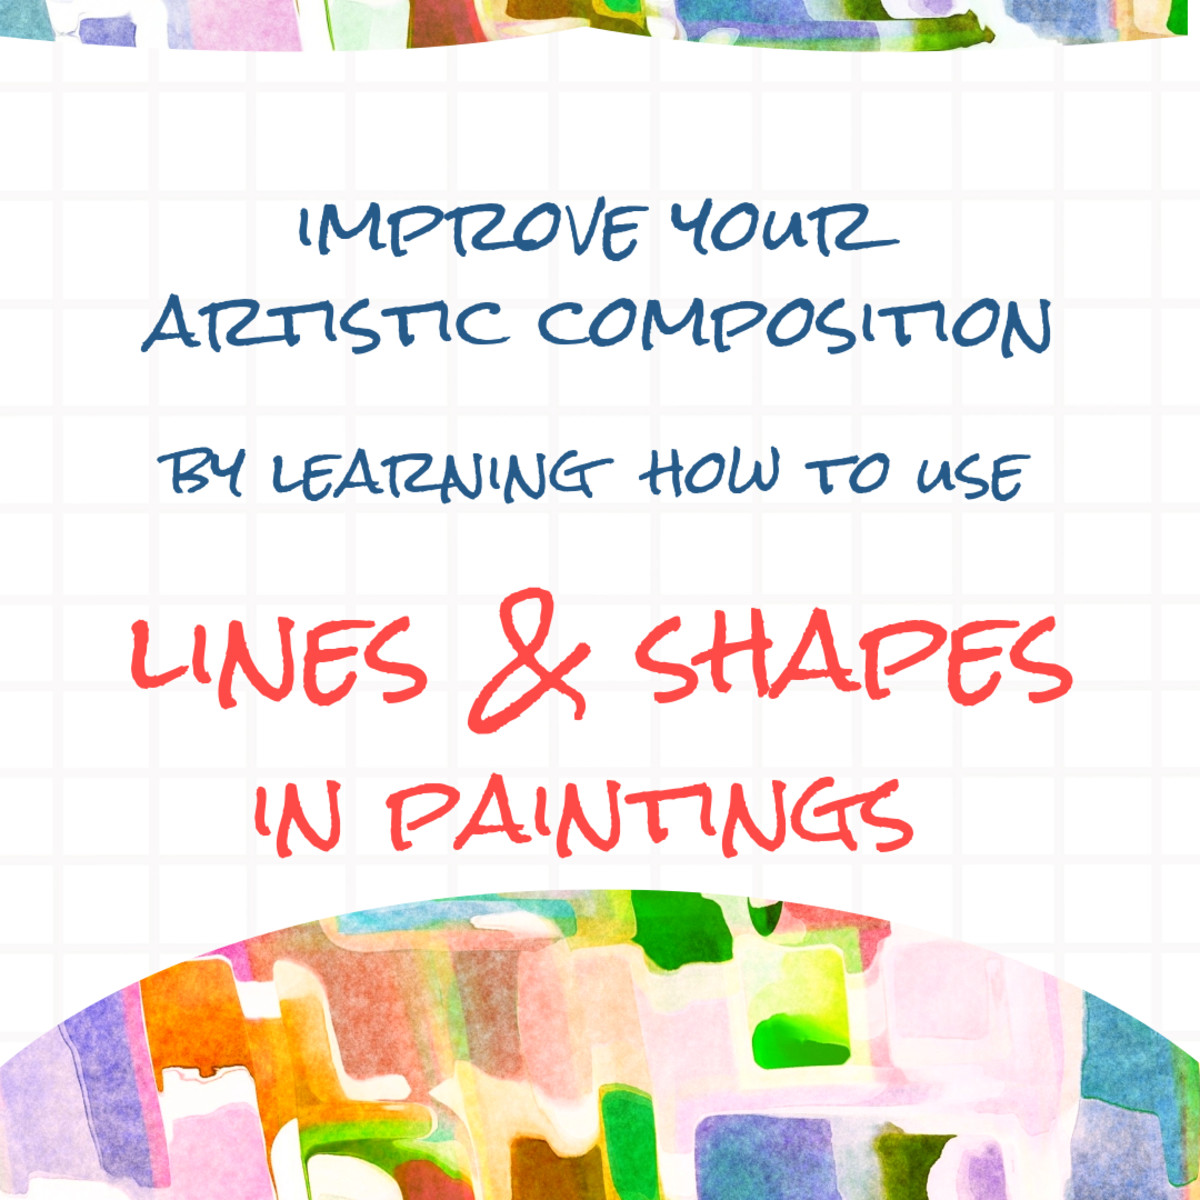 Lines and shapes are essential elements of painting. Learn how you to use them to affects the composition and overall feeling of the painting.